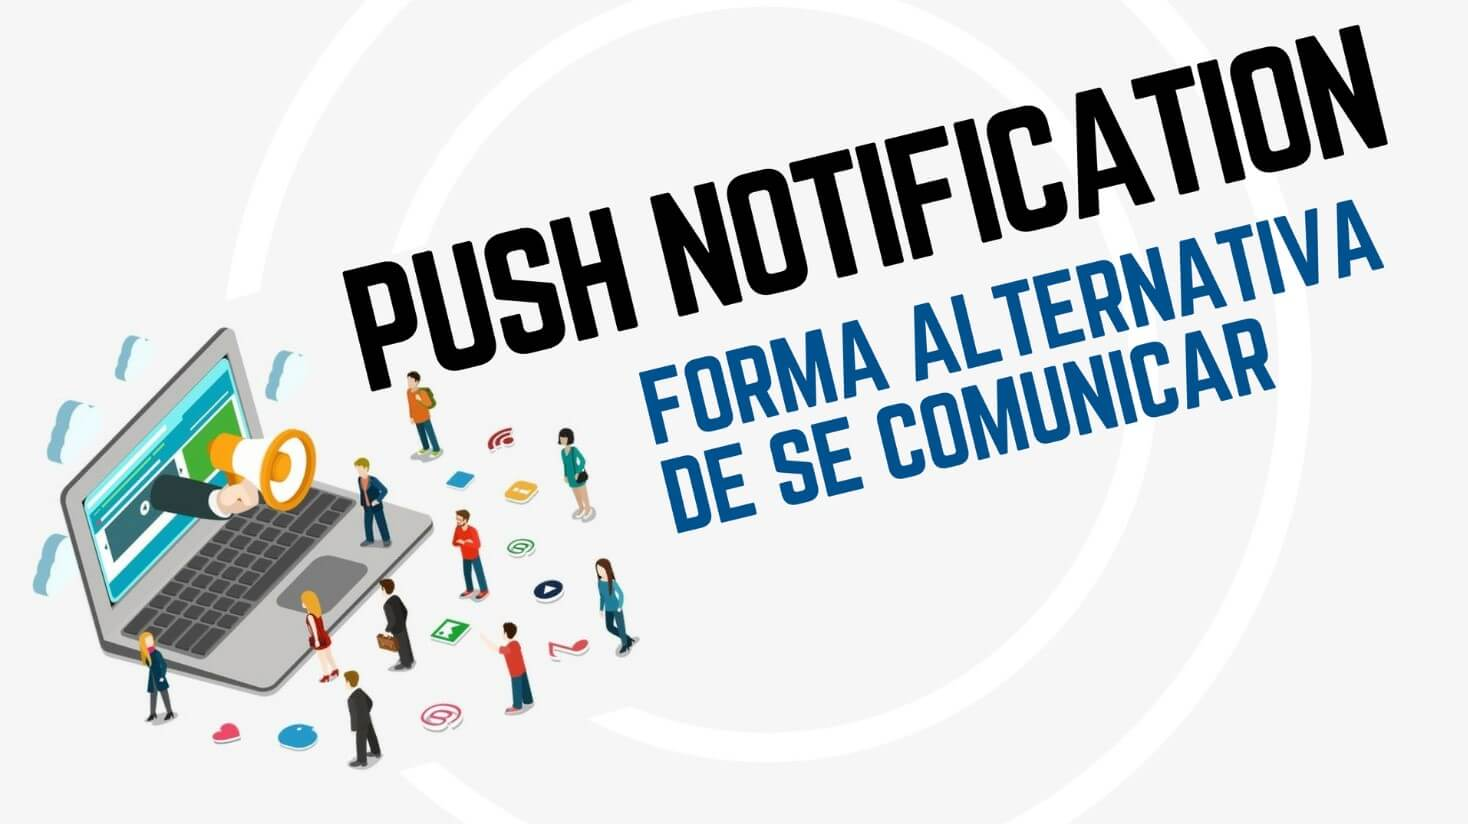 Push notification: uma forma alternativa de se comunicar